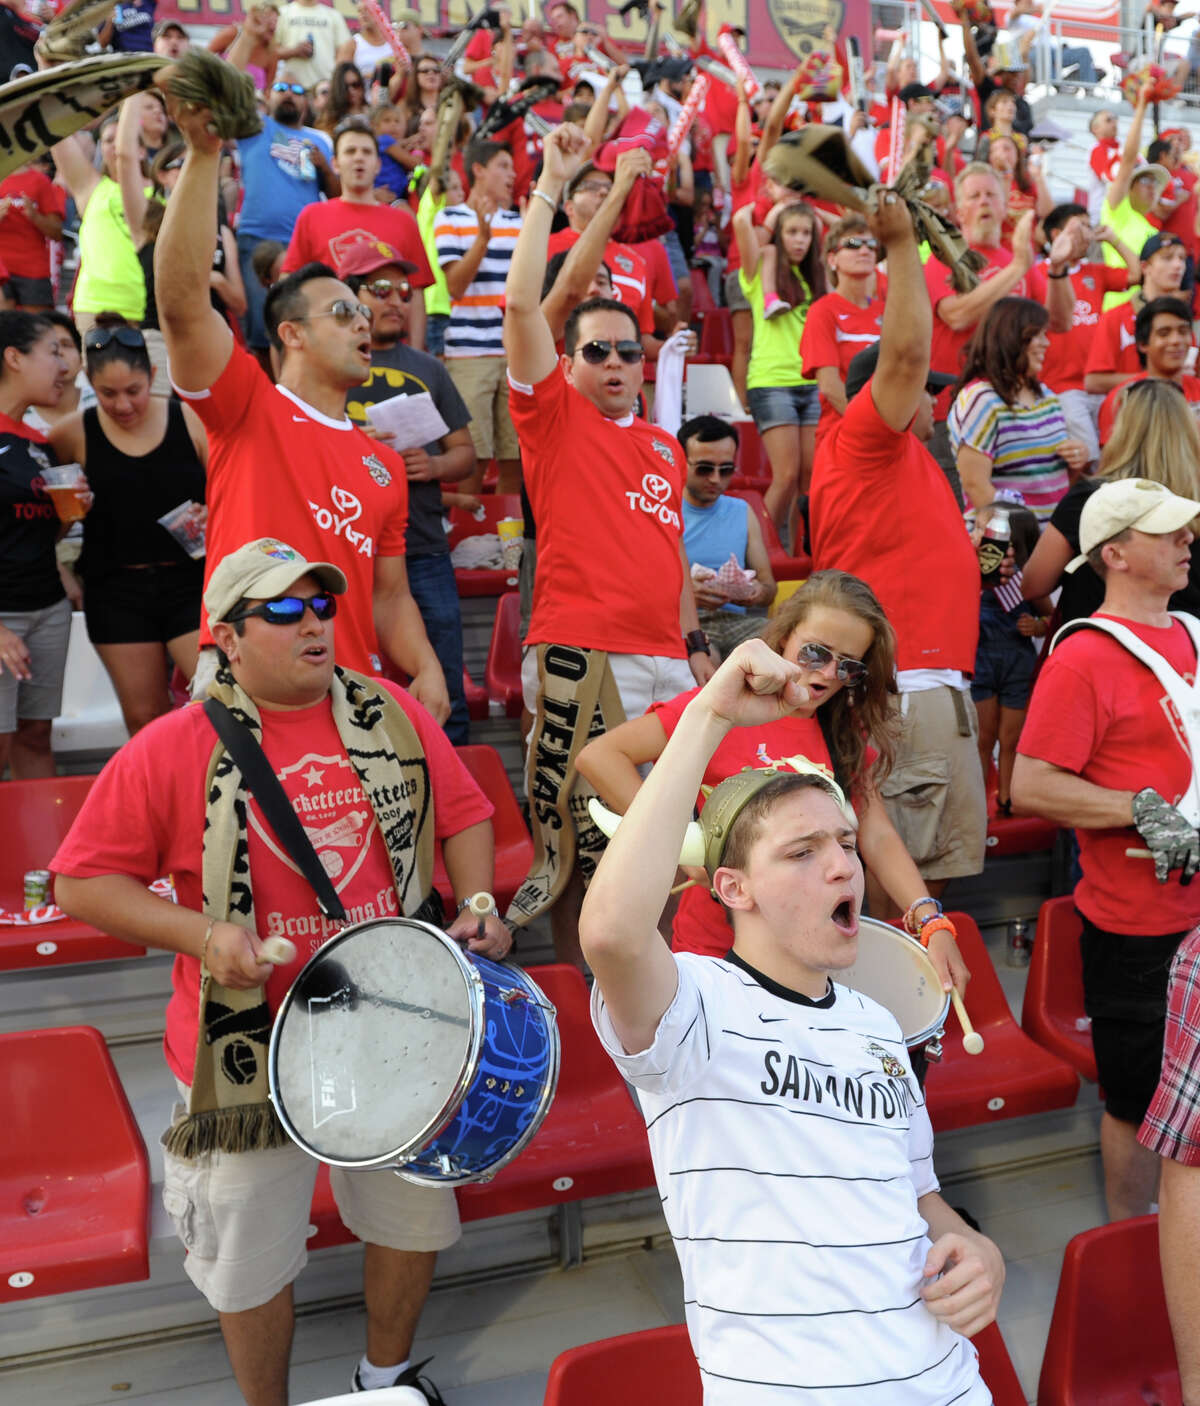 Members of the Crocketeers supporter group cheer on the Scorpions.